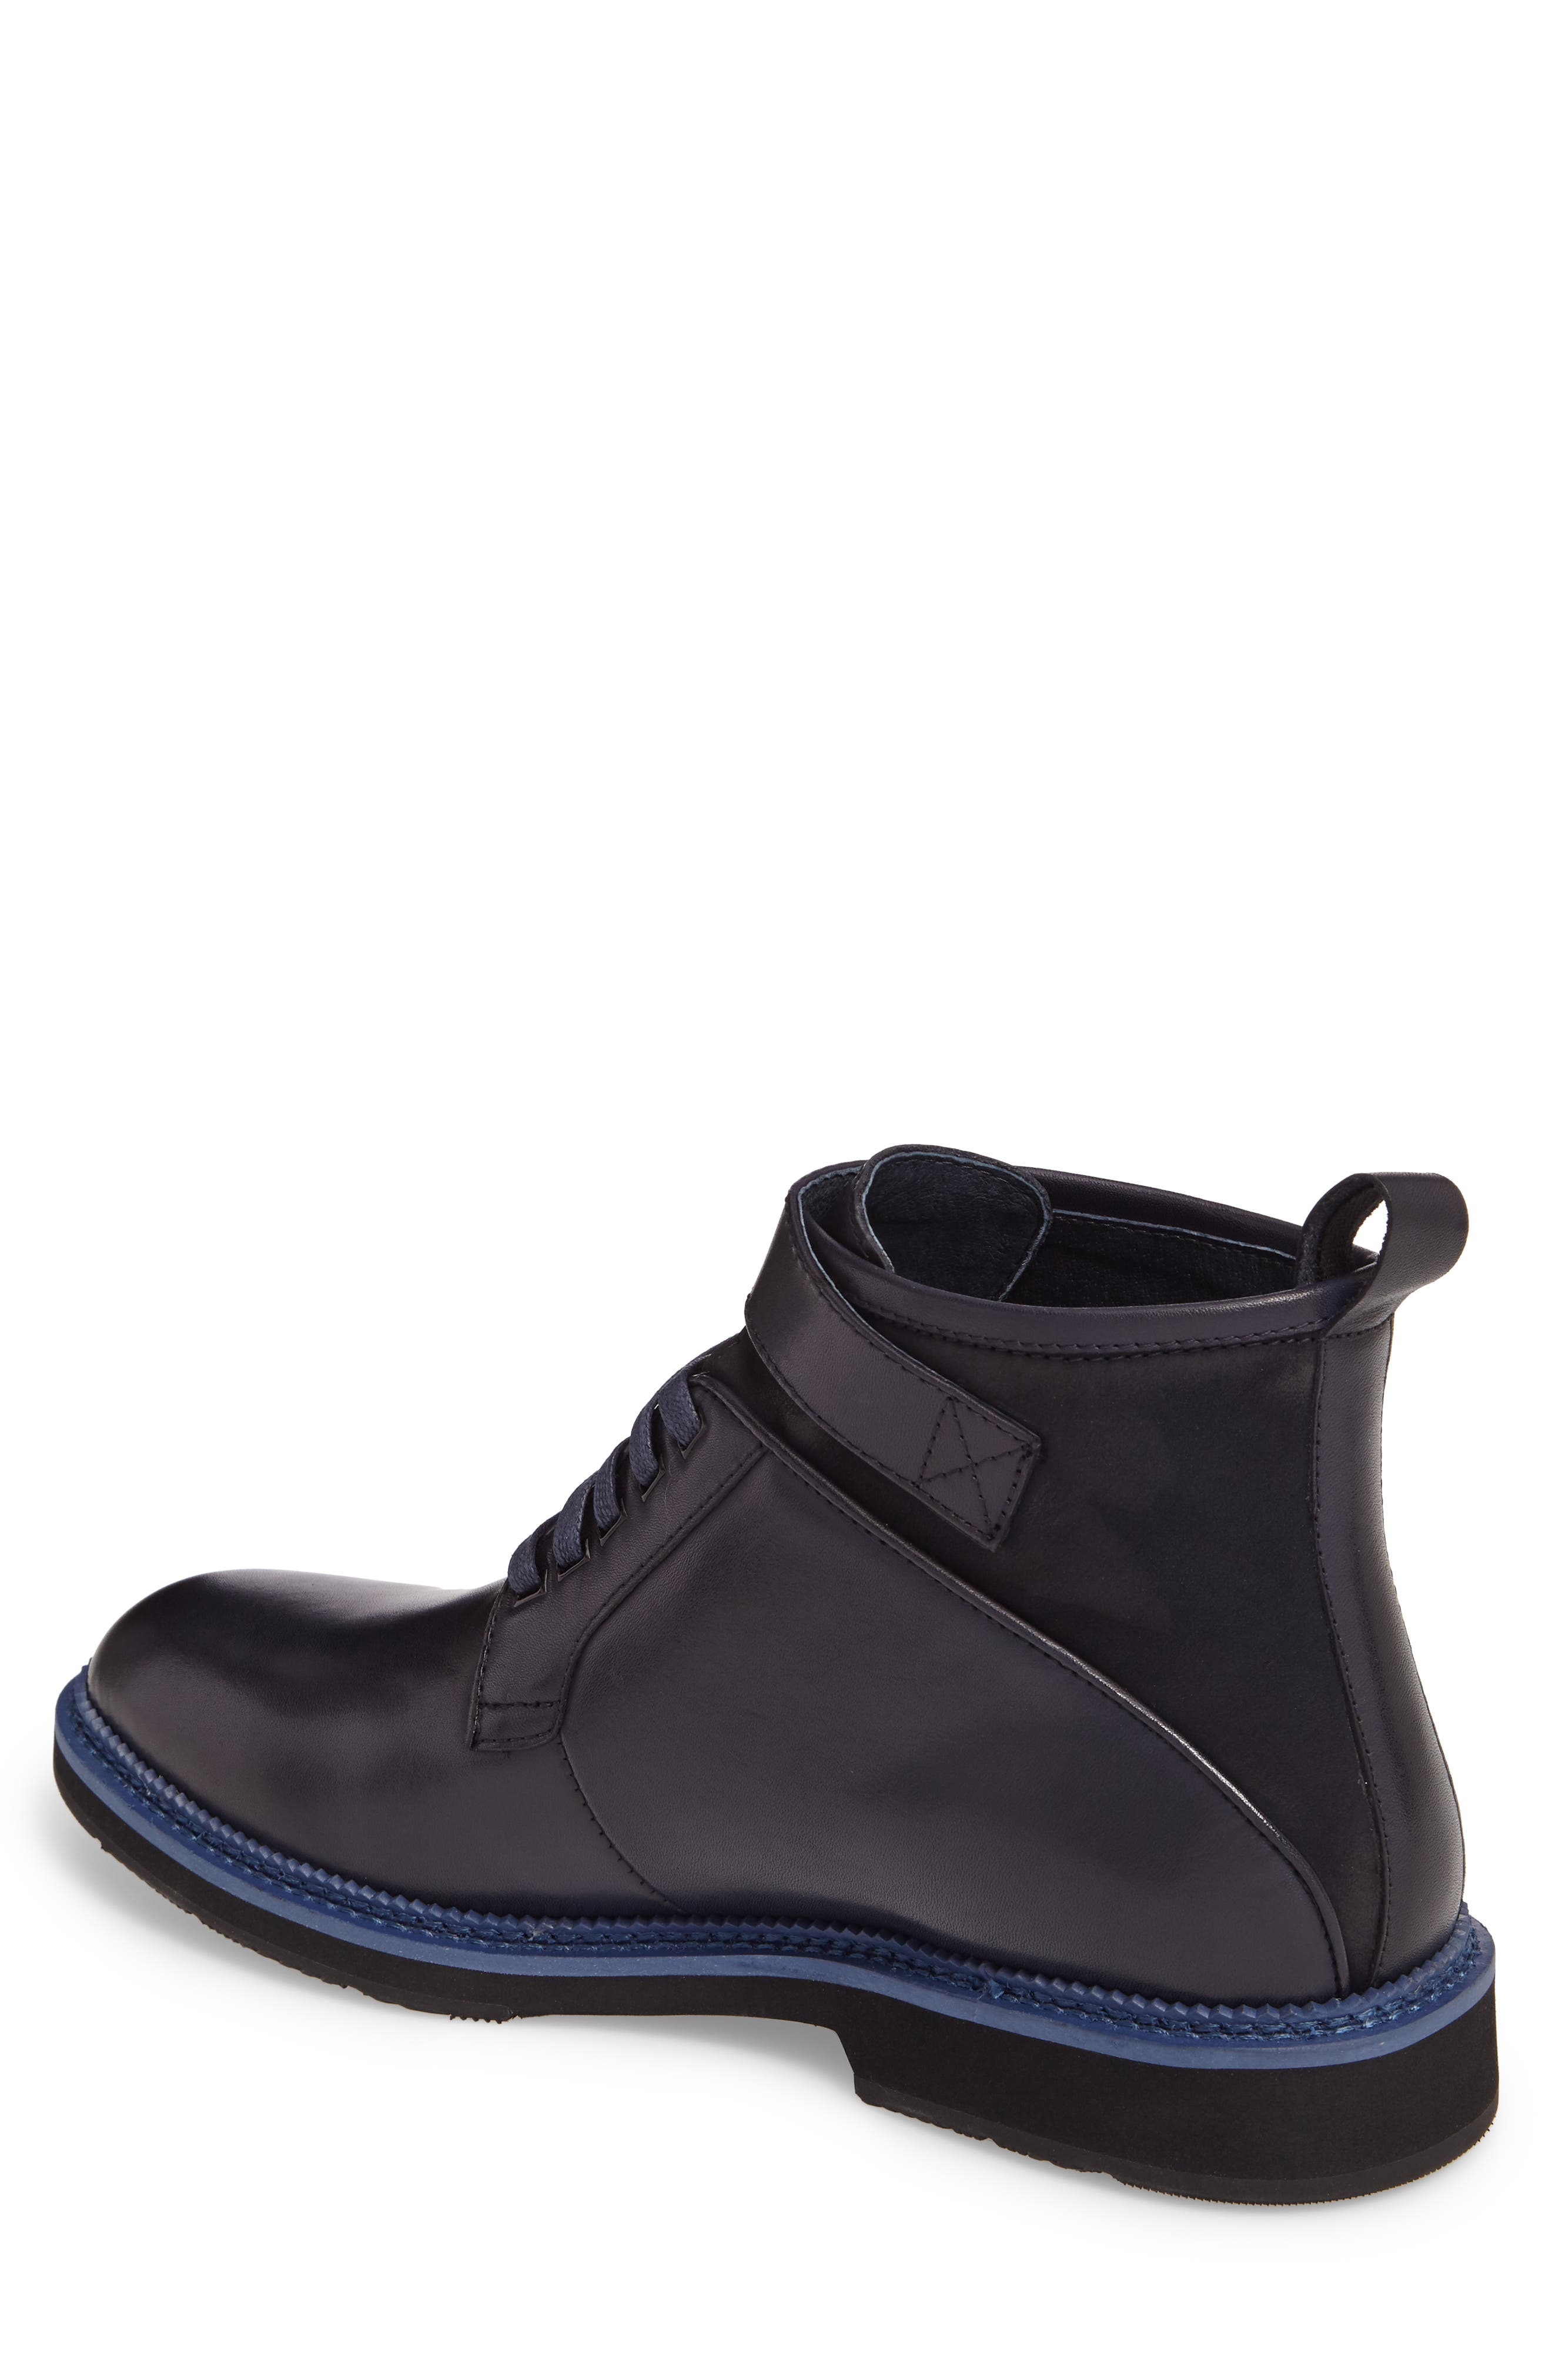 Ginko Plain Toe Boot,                             Alternate thumbnail 2, color,                             Navy Leather